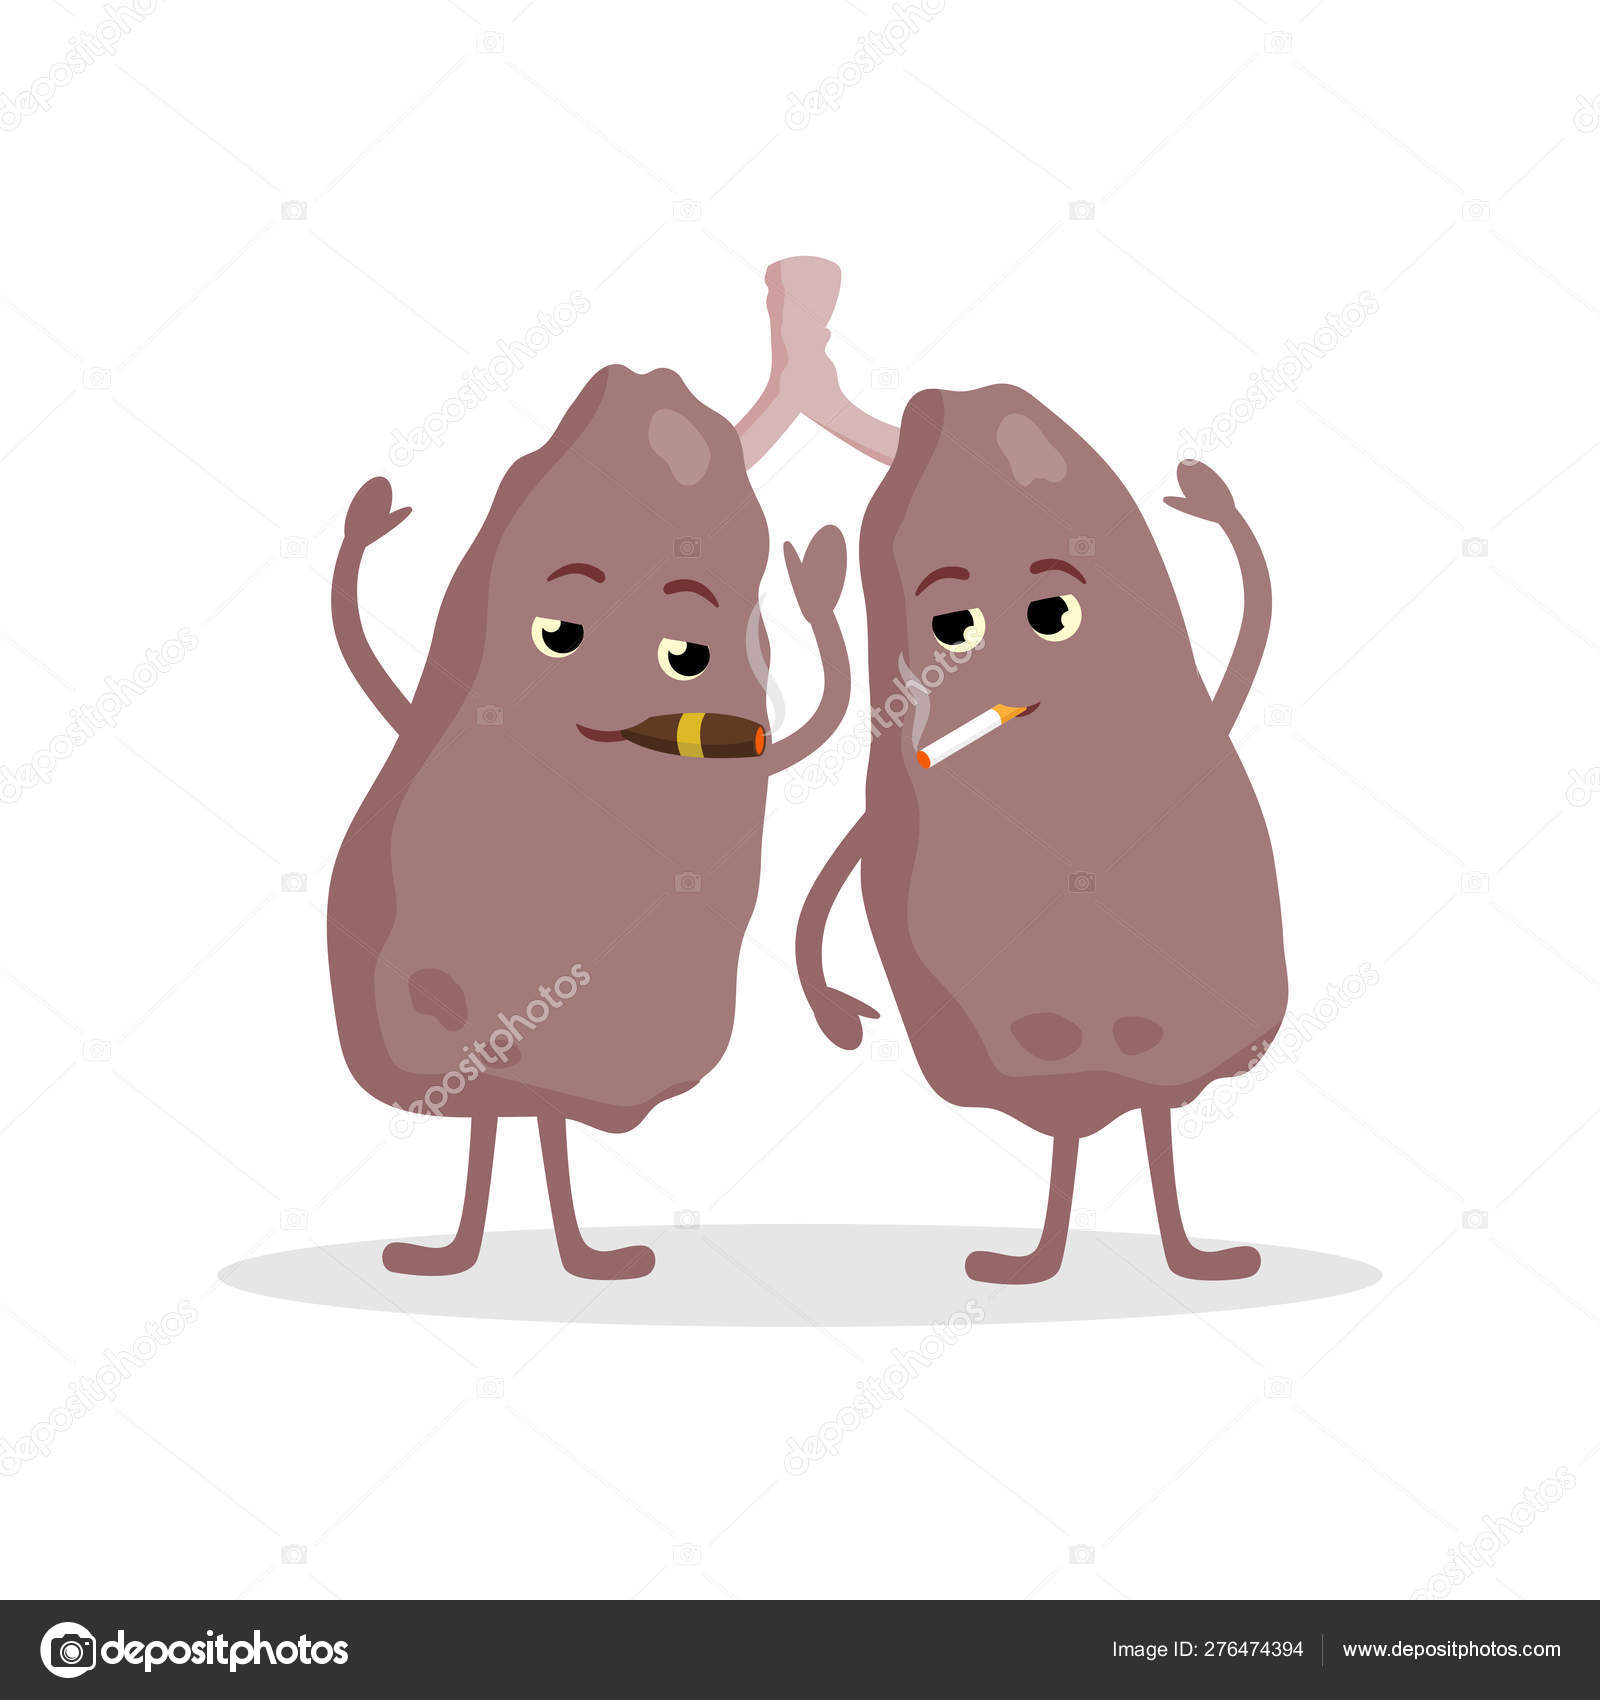 Lungs Cartoon Characters Smoking And Having Bad Health Lung Cancer Impact Of Cigarettes To Lungs Concept Vector Illustration Isolated On White Background Stock Vector C Bezvershenko 276474394